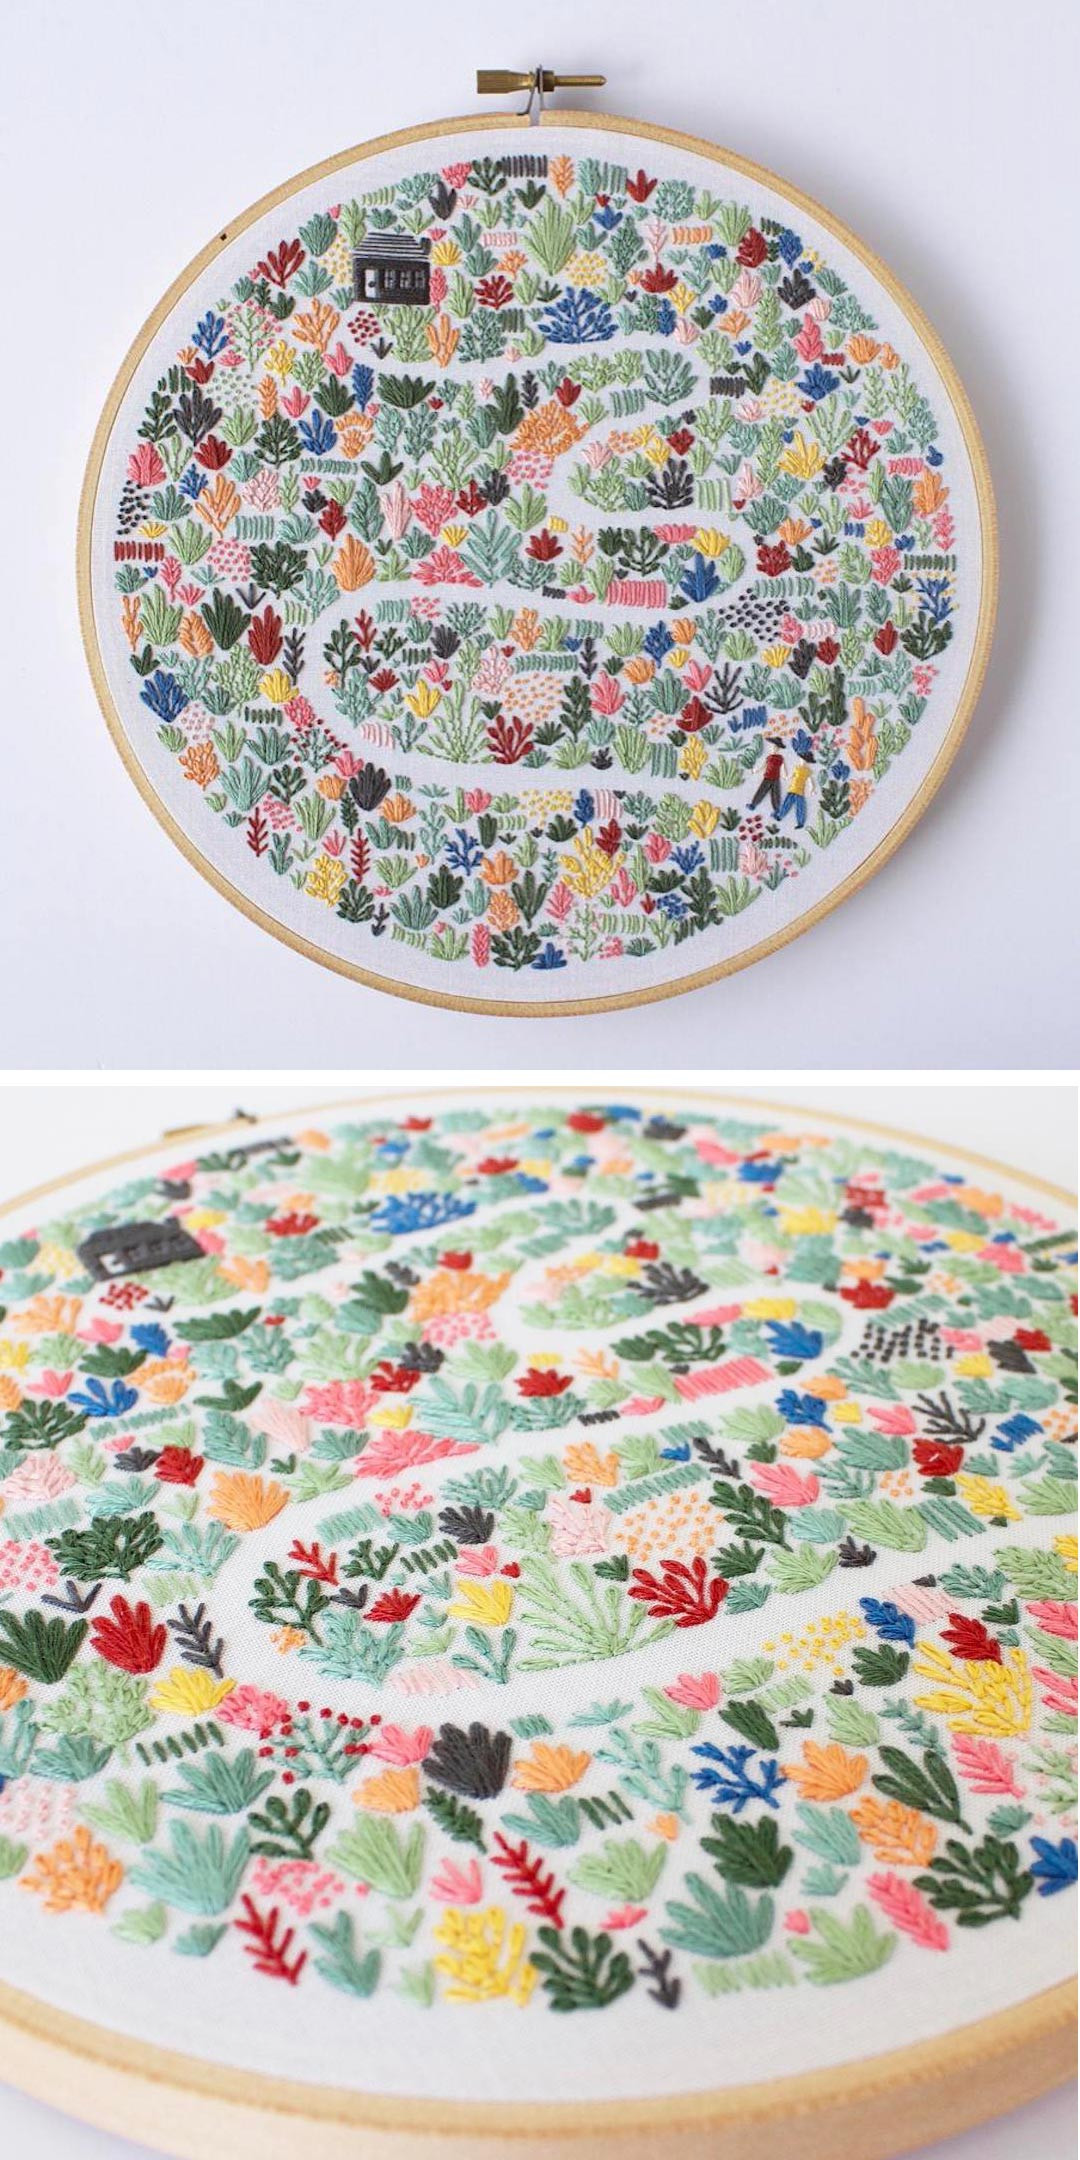 Modern Embroidery Patterns Highlight the Collaborative